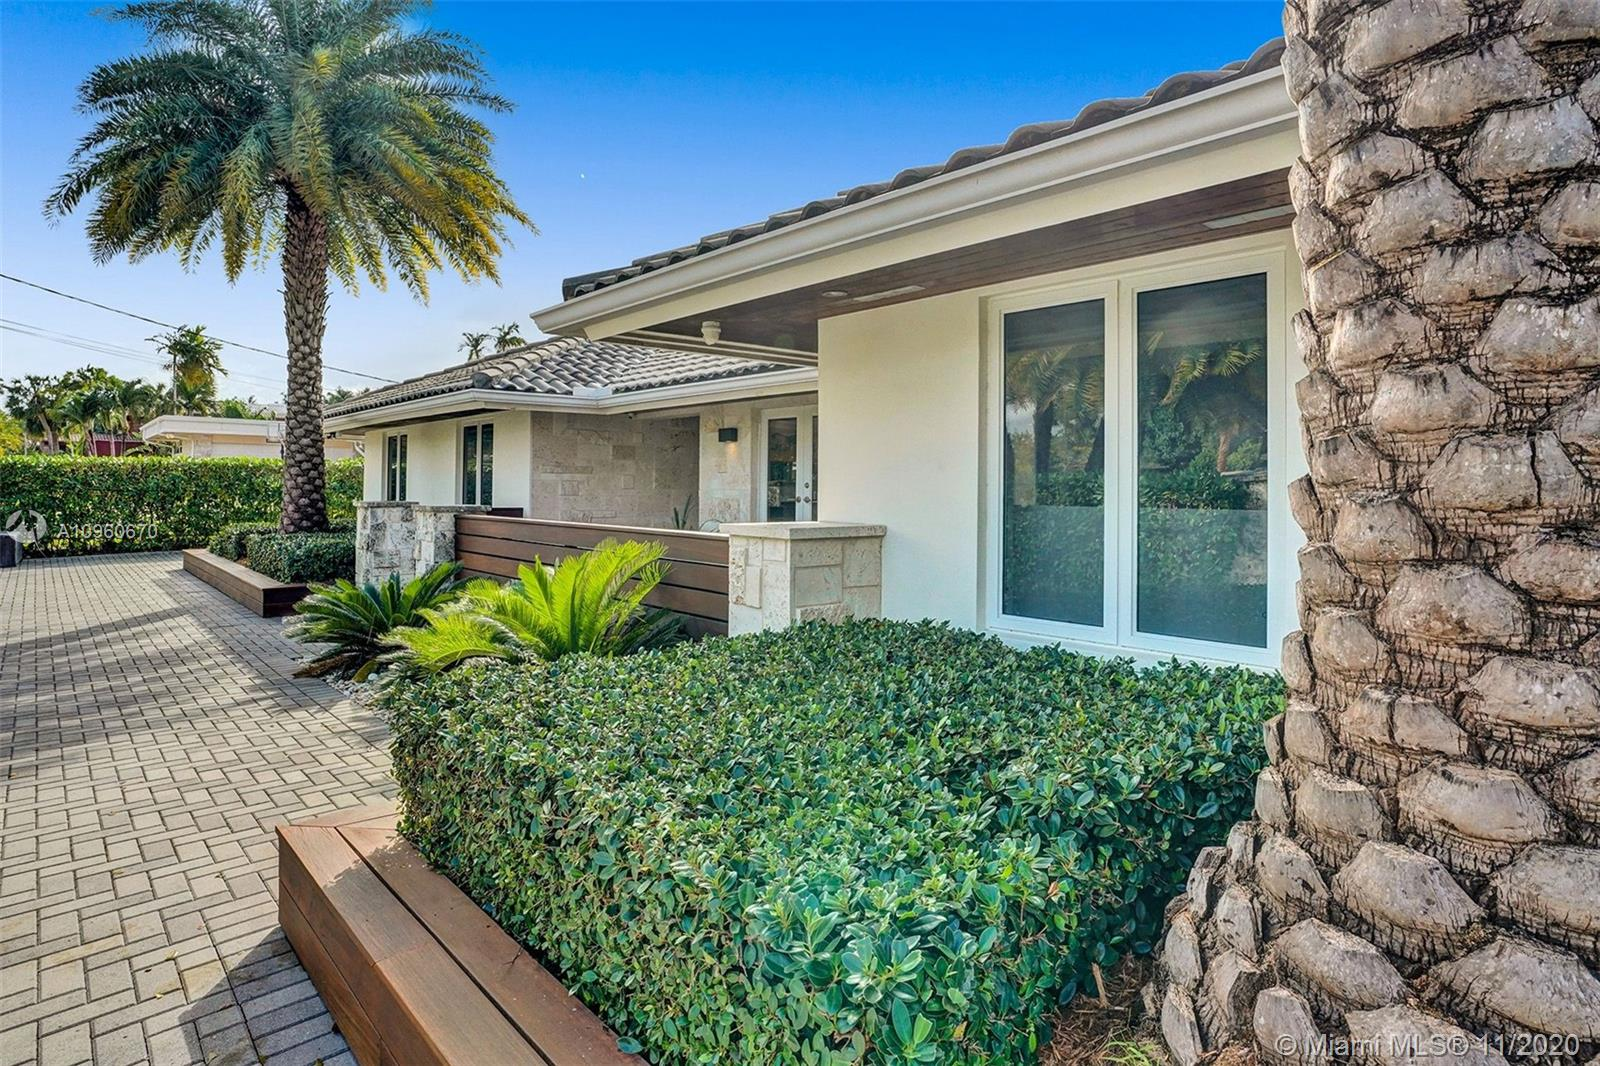 Beautiful remodeled home to the highest construction standards. Privately gated with elegant interior finishes, this single story, 5 bedroom,  4.5 bathroom property is the perfect family home. It has a Tiki with an outdoor kitchen plus a cabana bathroom perfect for outdoor gatherings. The minute you walk in the home the views of the new and exclusive SLS golf resort designed by Greg Norman will capture your eye. The living room, kitchen and master bedroom all have views to the pool and  golf course. The huge gourmet kitchen with custom cabinetry includes 4 Wolf ovens, gas range , 2 dishwashers, subzero fridge and freezer. Hurricane impact windows thru-out. Located 5 minutes from the beach, 10 minutes from Aventura, 15 minutes from Bal Harbour and Fll, make this home very centric.